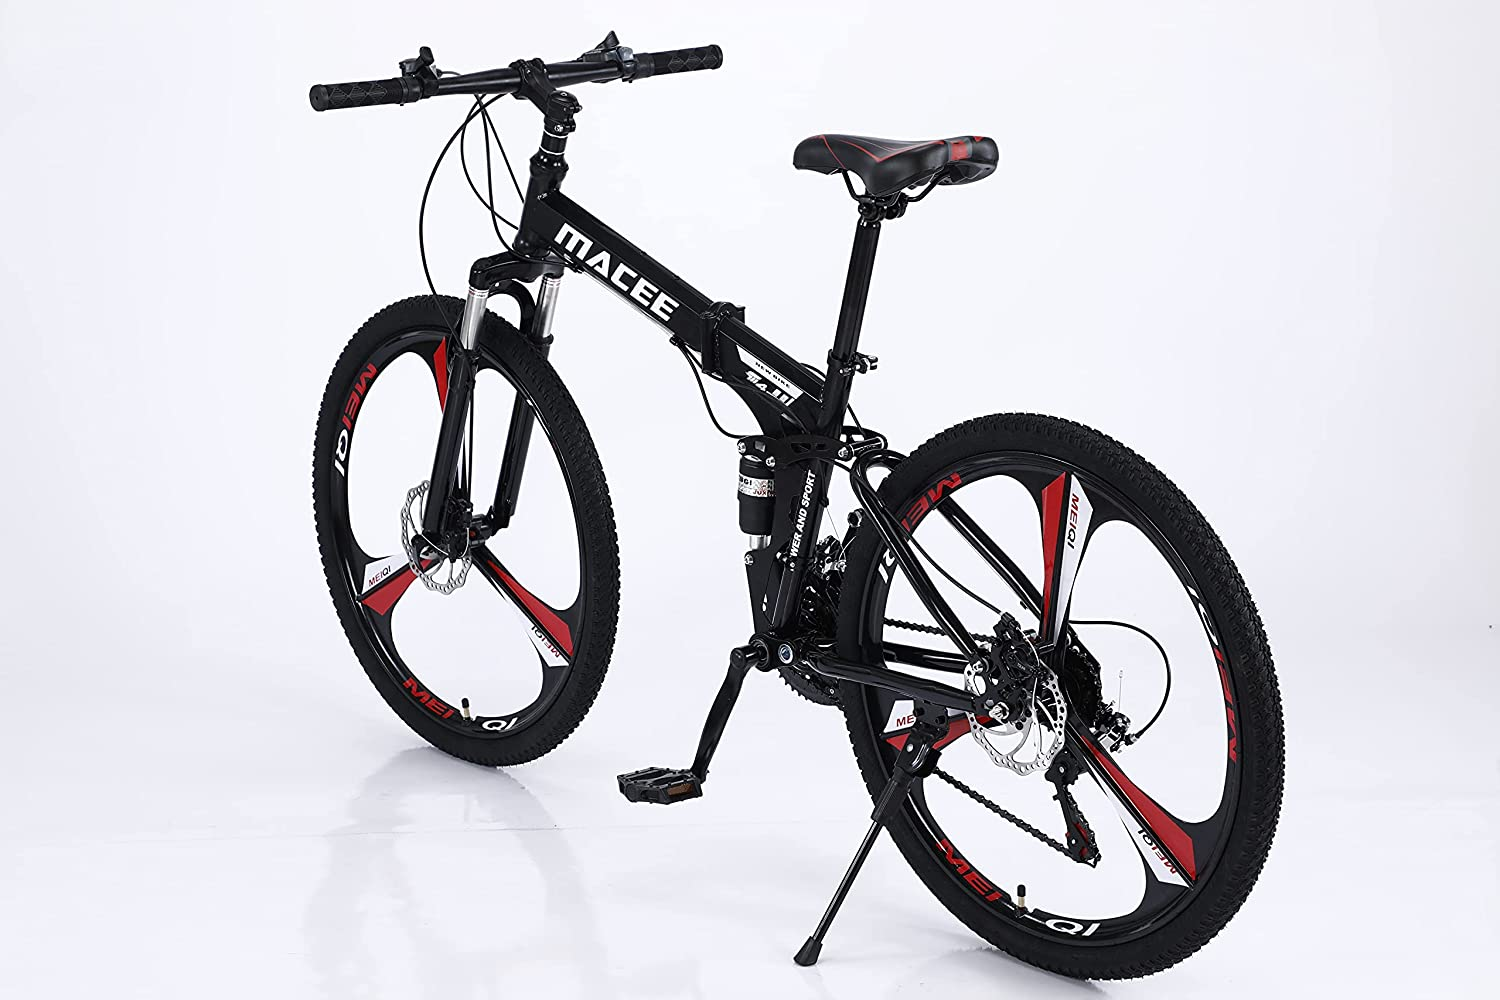 VICXYY 24in 26in Latest item Challenge the lowest price of Japan ☆ Folding Moutian - para Bike Bicicletas Hombres